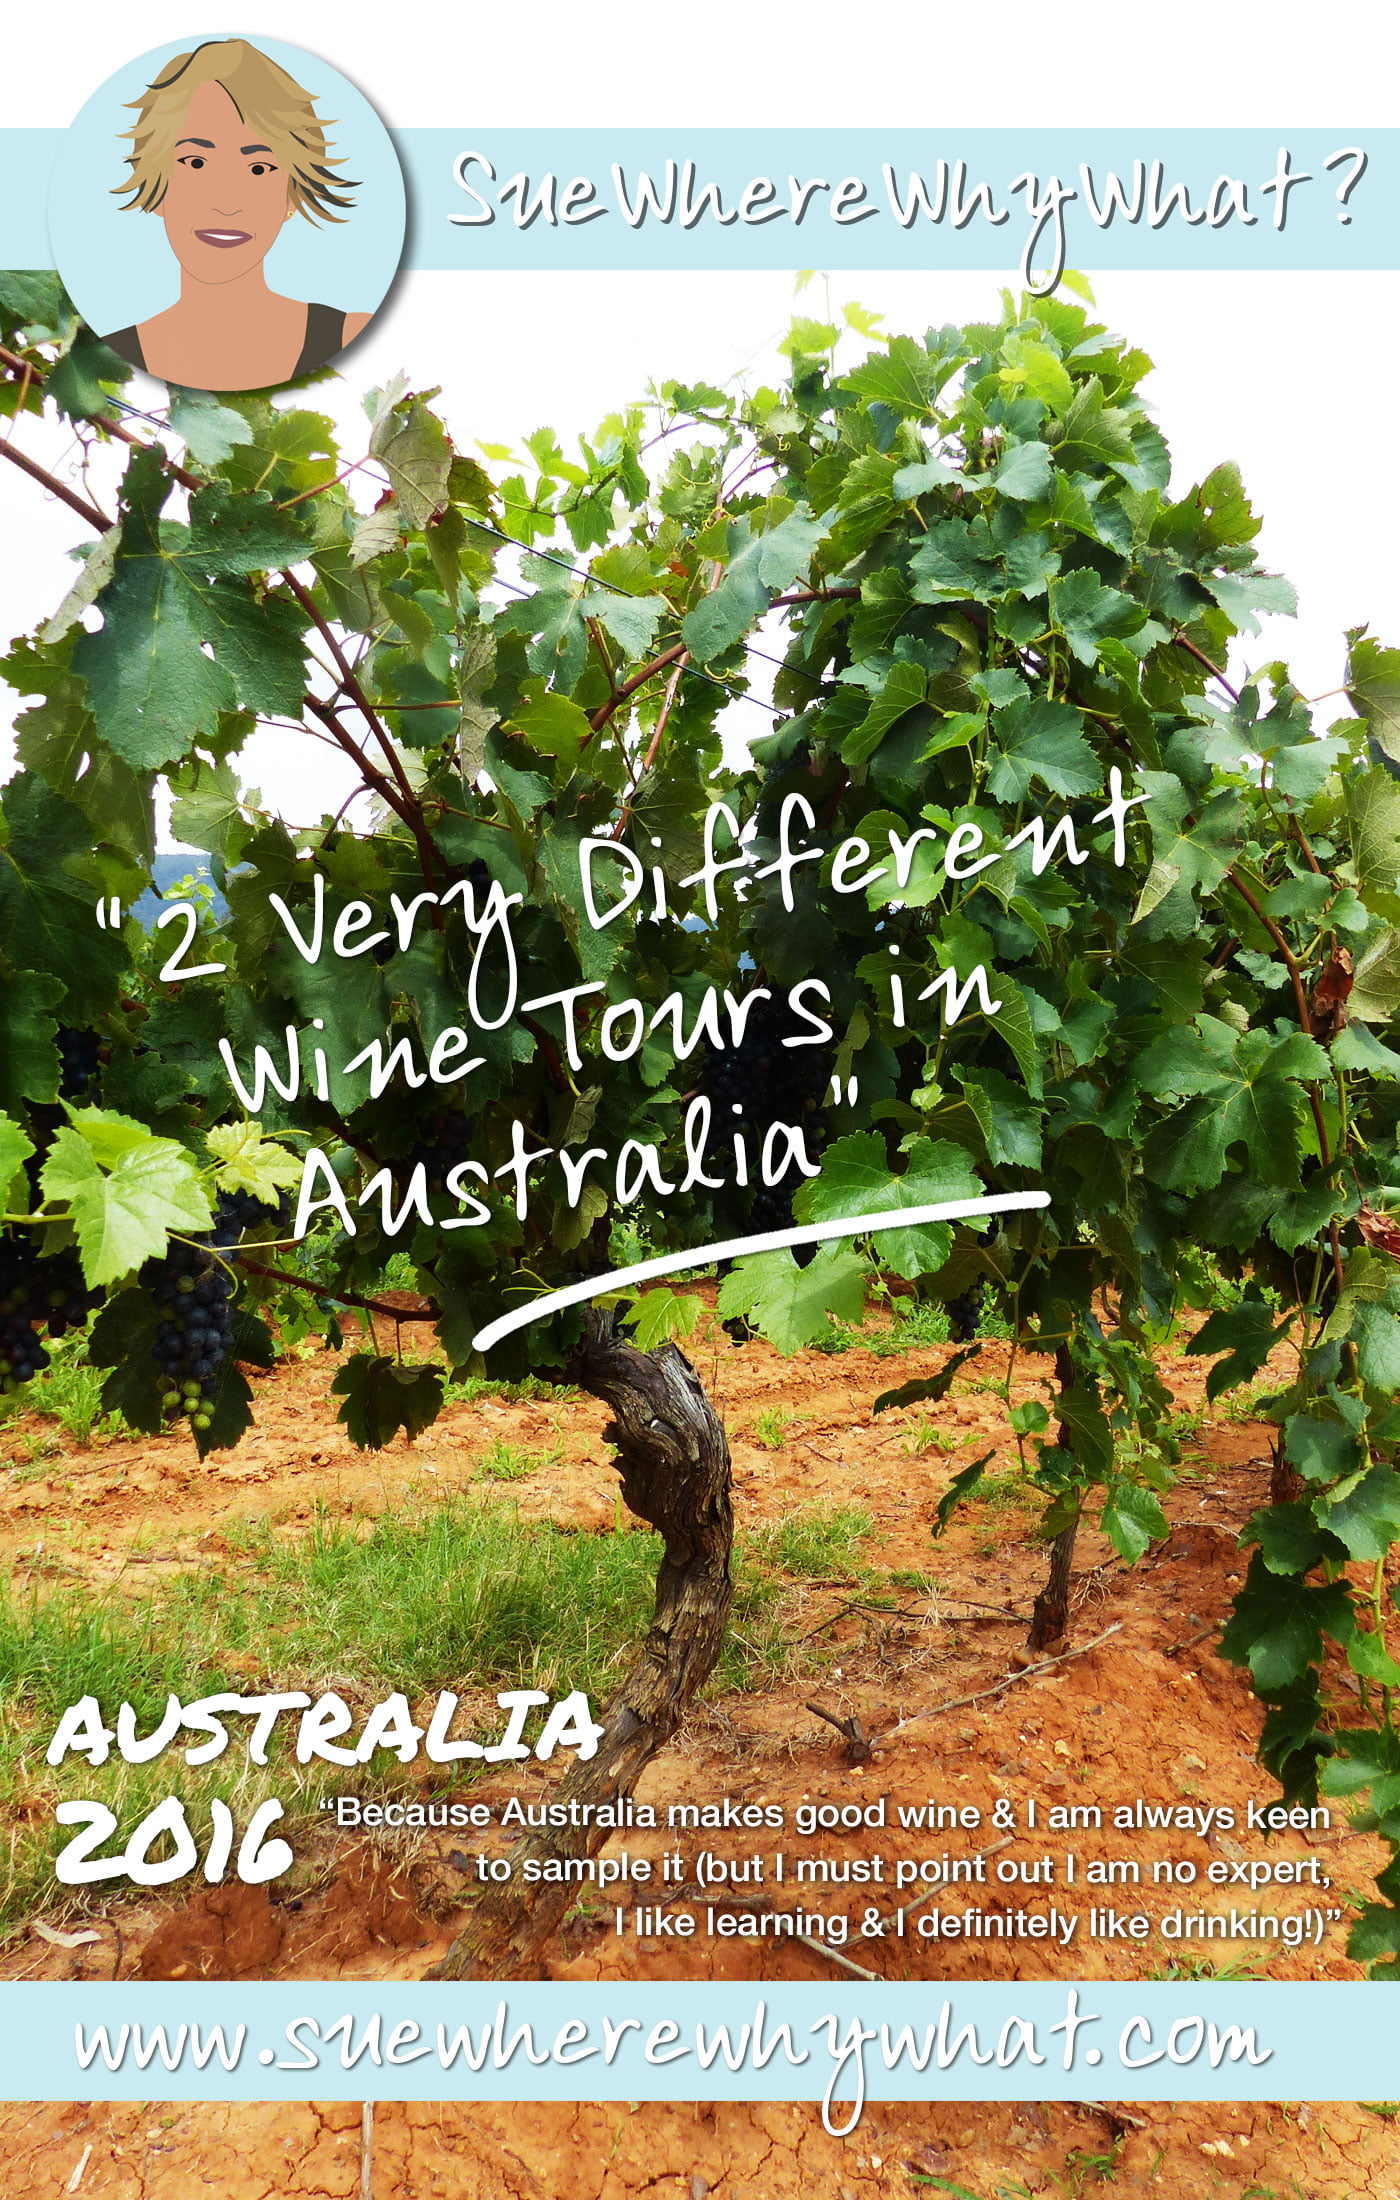 2 Very Different Wine Tasting Tours in Australia. Features Hunter Valley & Margaret River regions. 